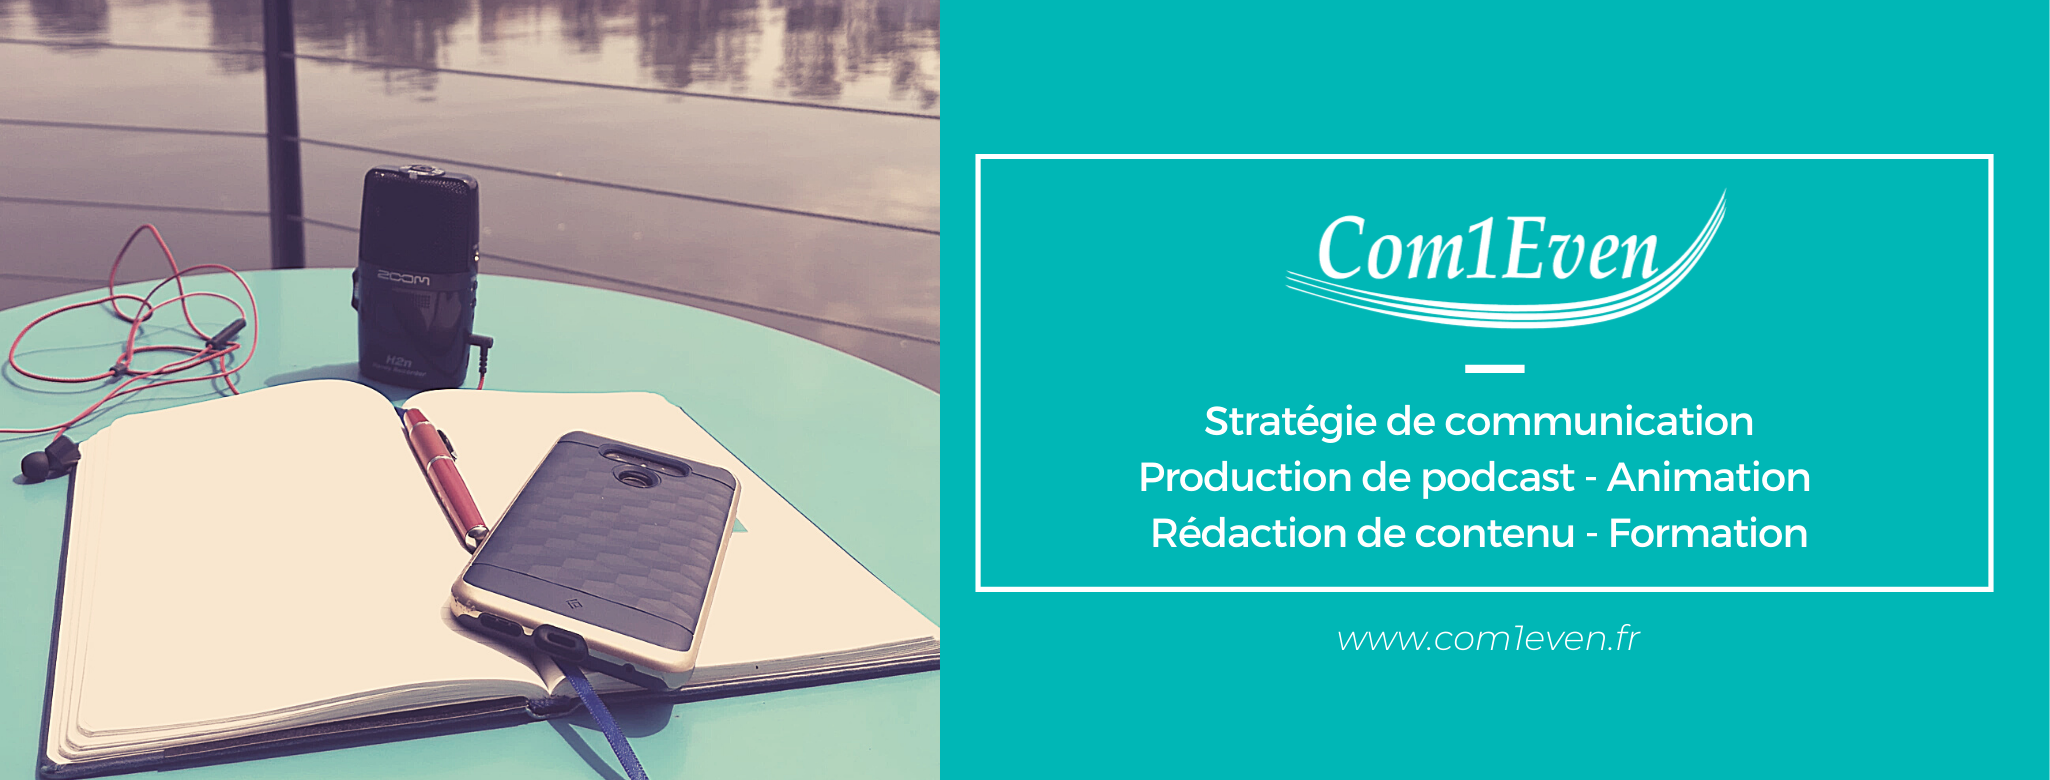 Com1Even, agence de communication et production de podcast dans le Vaucluse